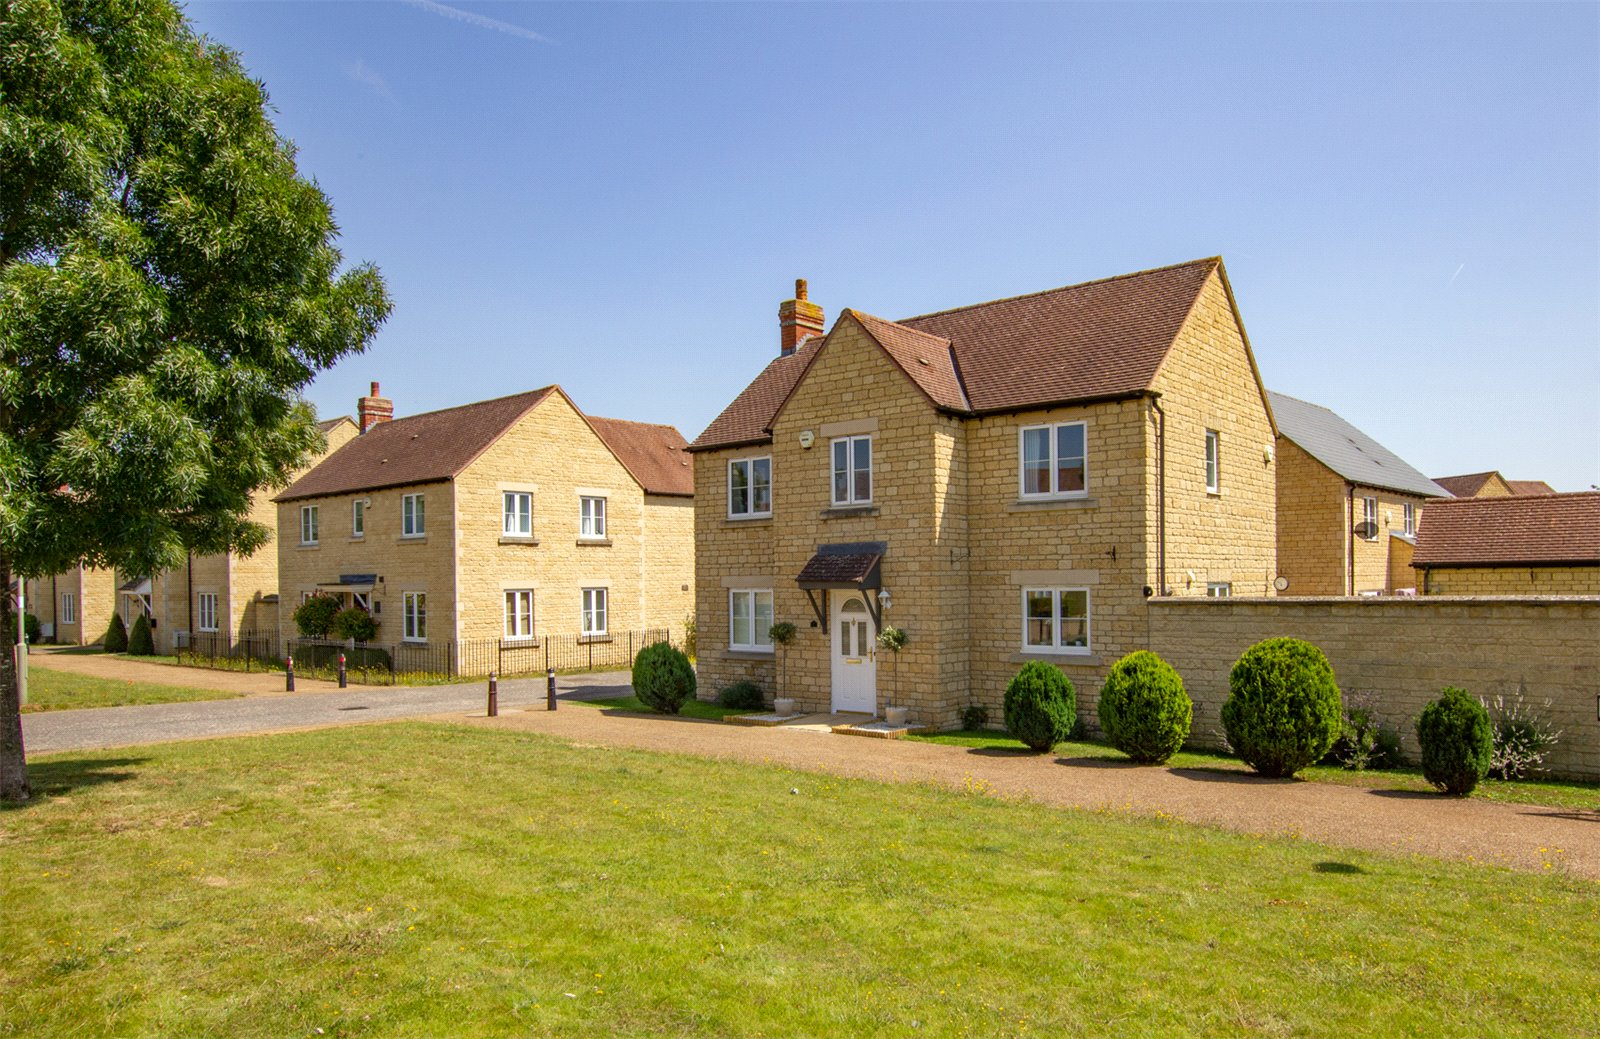 Trefoil Way, Carterton, Oxfordshire OX18